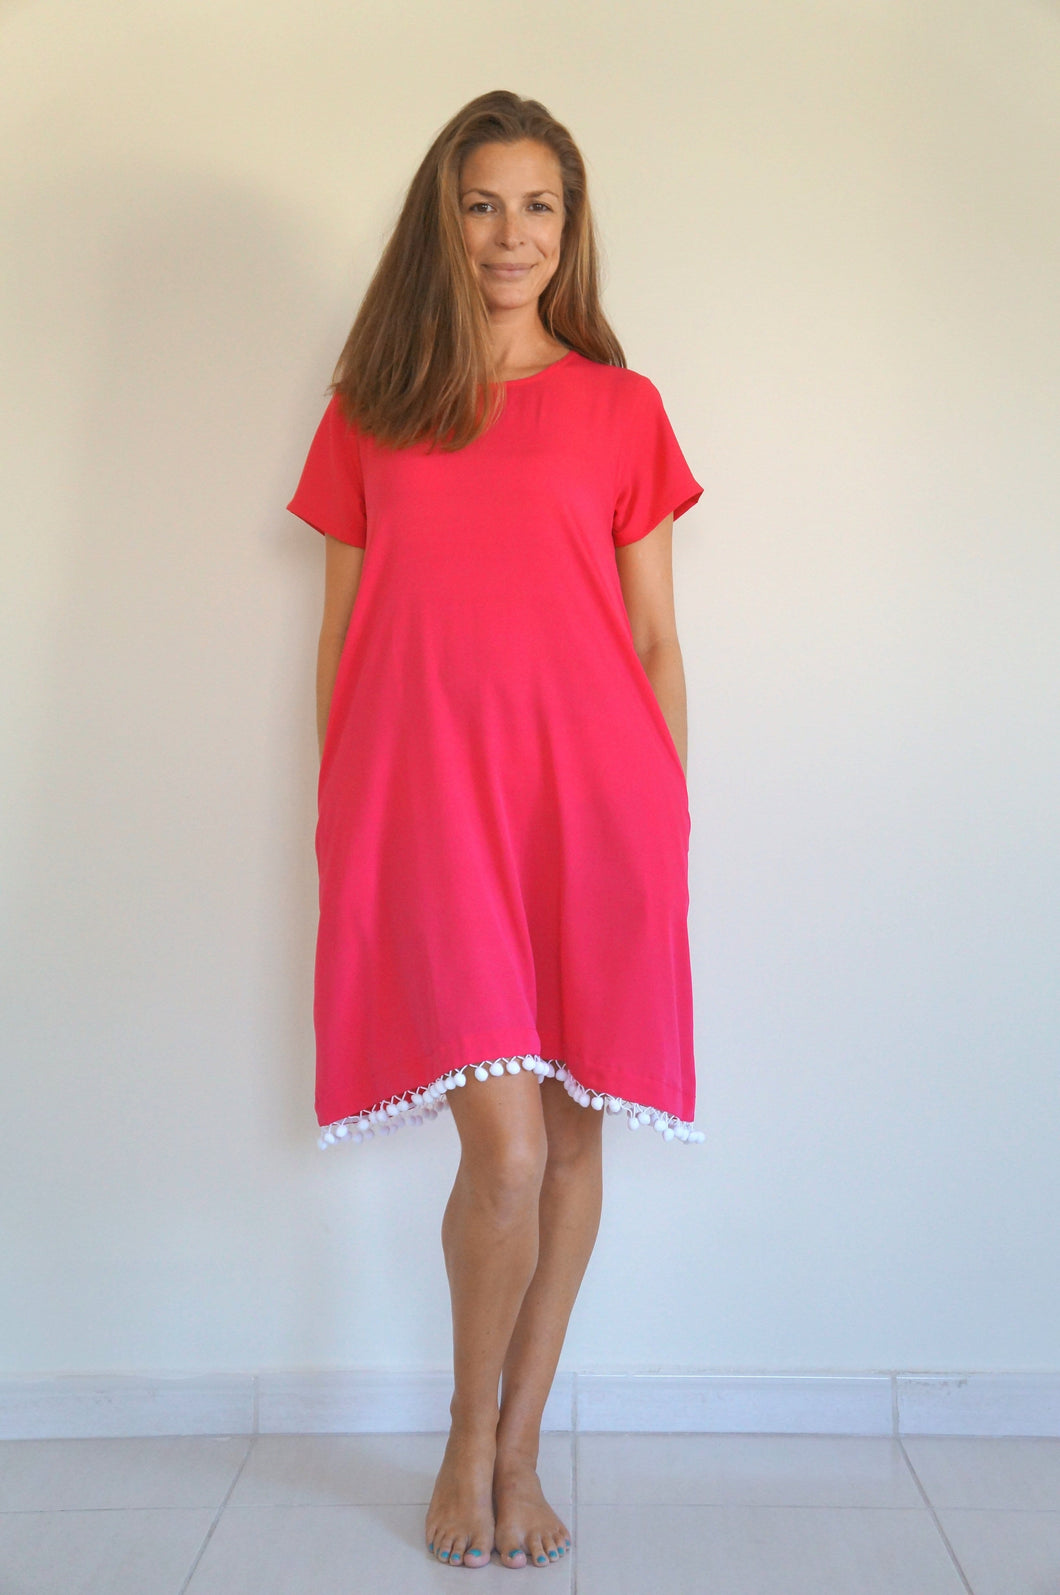 The Anywhere Dress - Raspberry with white pom-poms